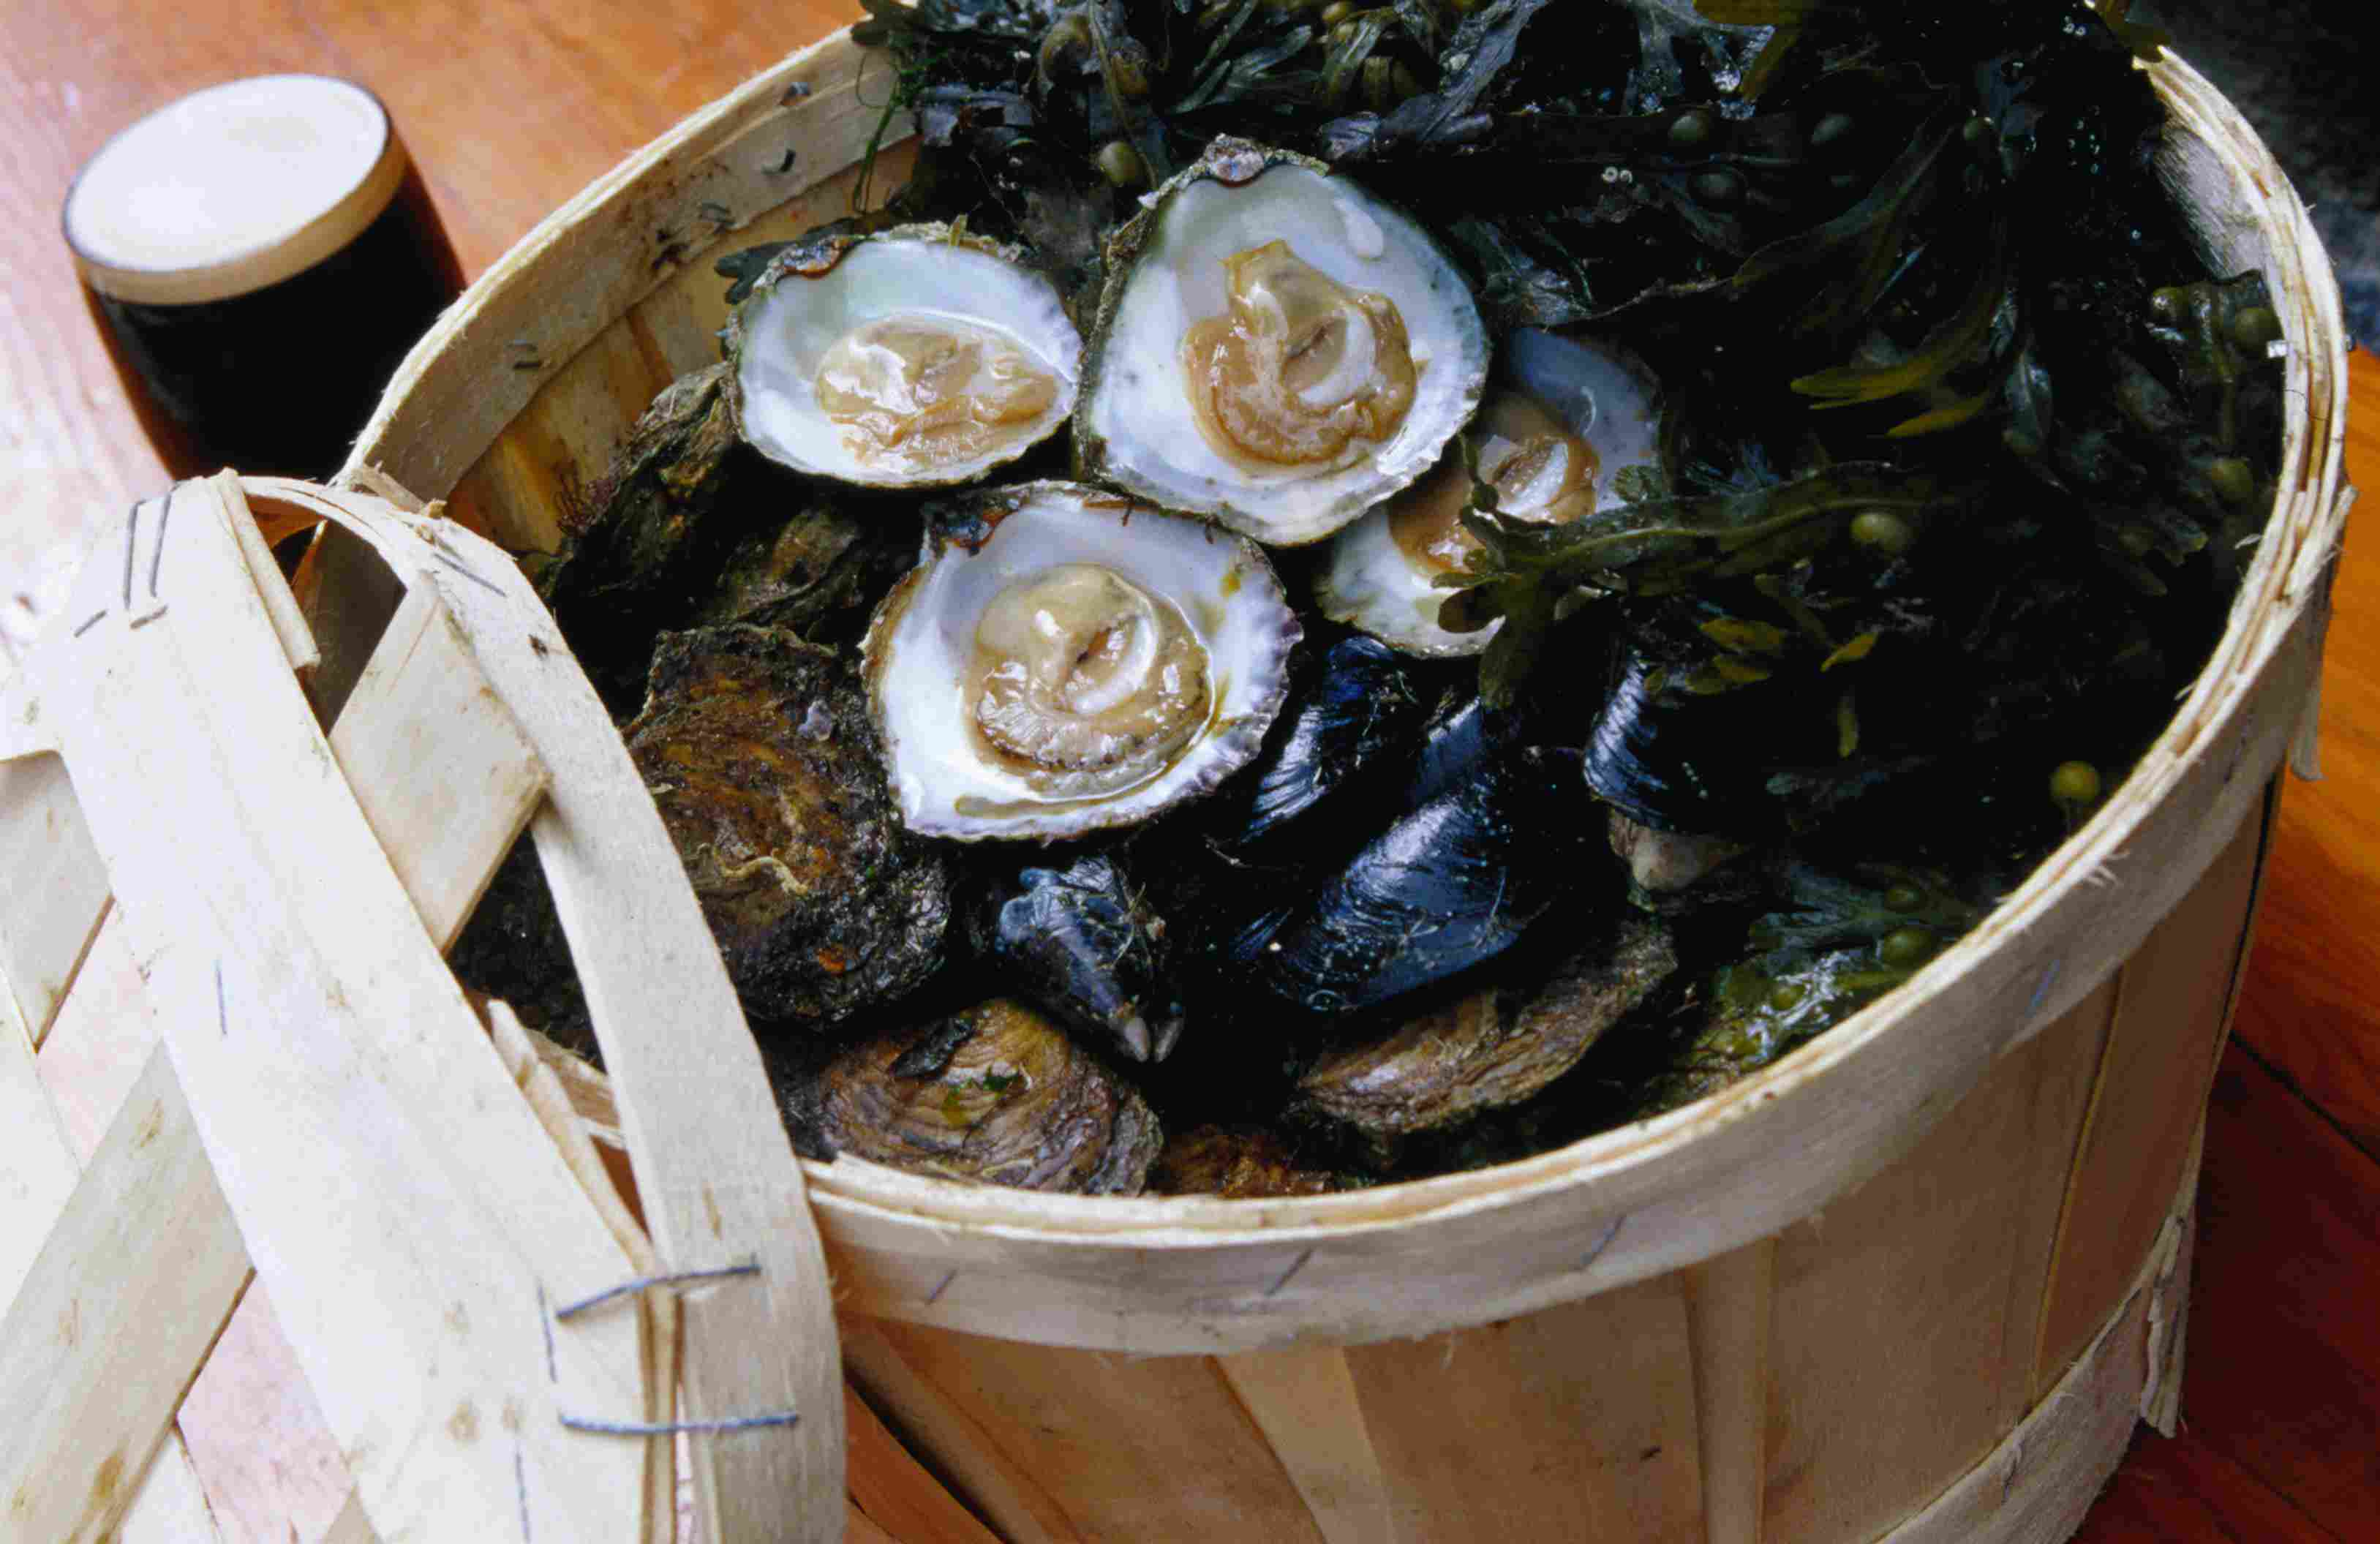 Galway oysters in Ireland